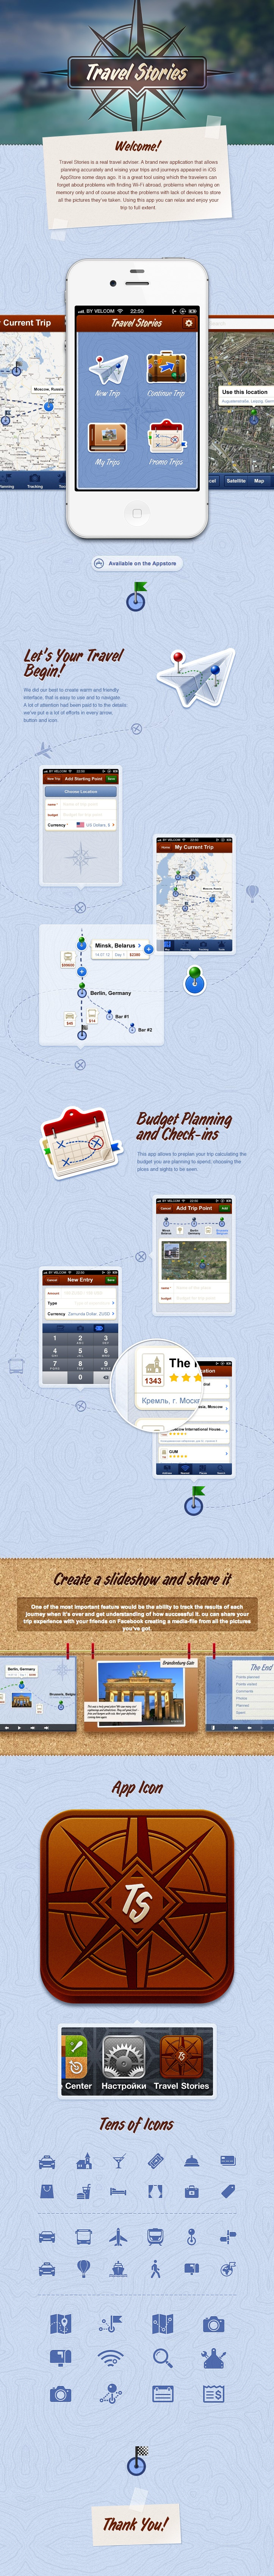 Travel Stories - iPhone application for trip or journey planning - by AGENTE and Vladimir Gorz , via Behance